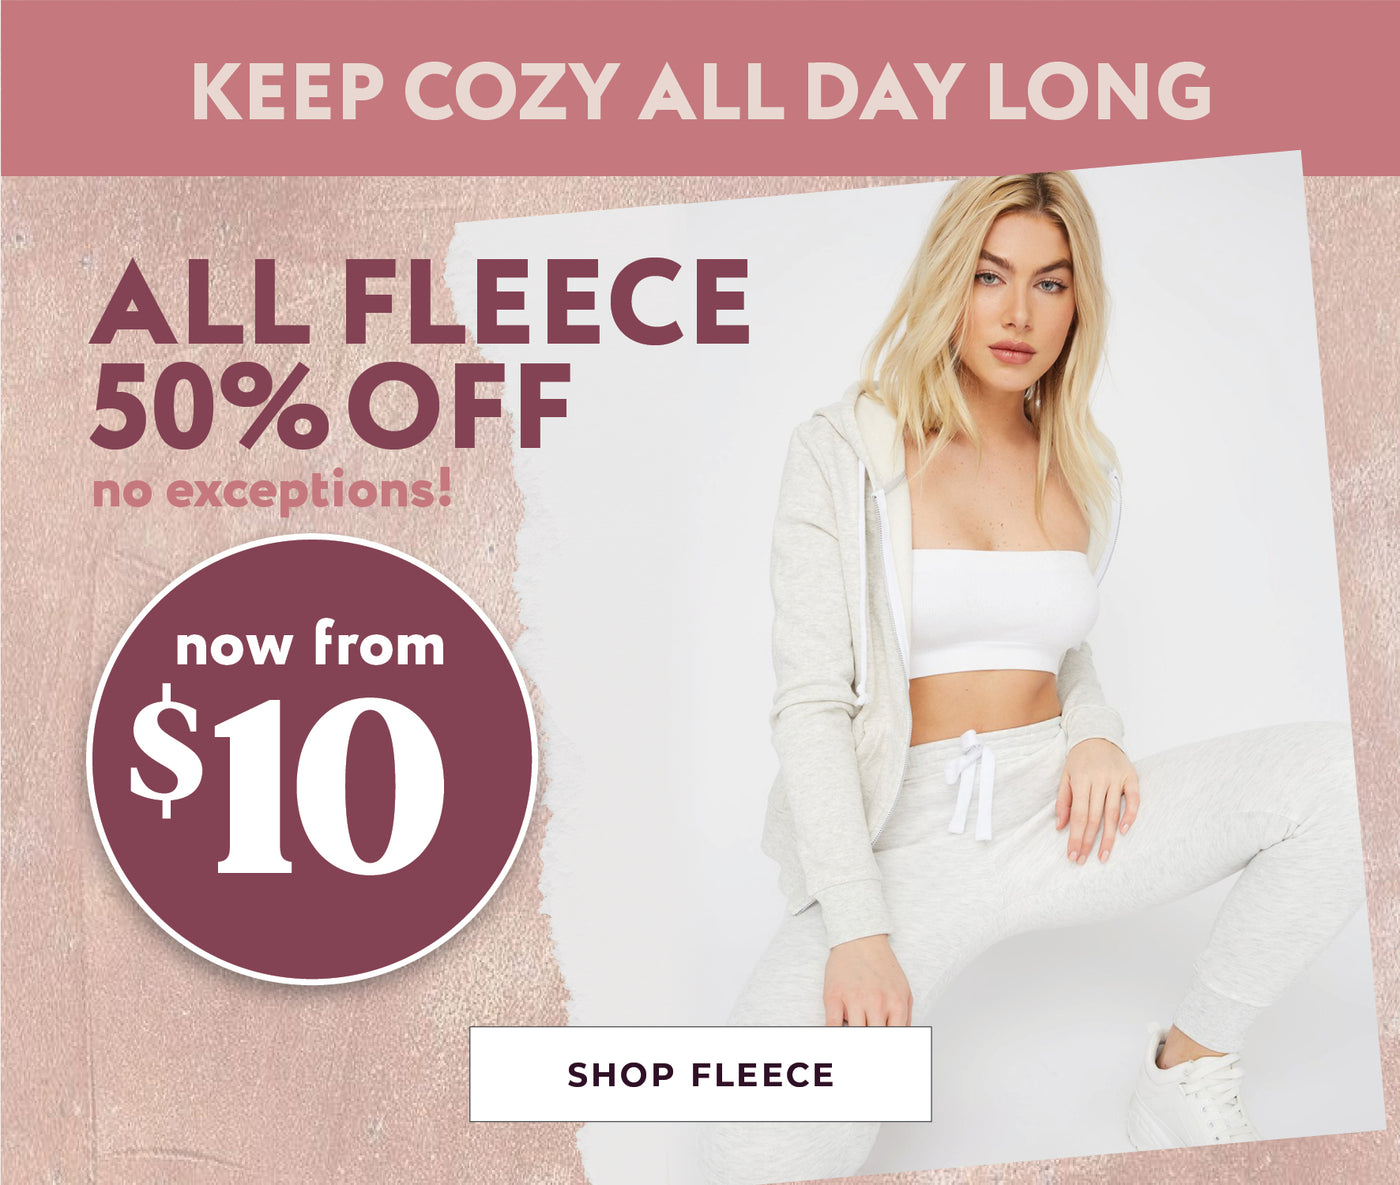 All Fleece - 50% Off - Now from $10